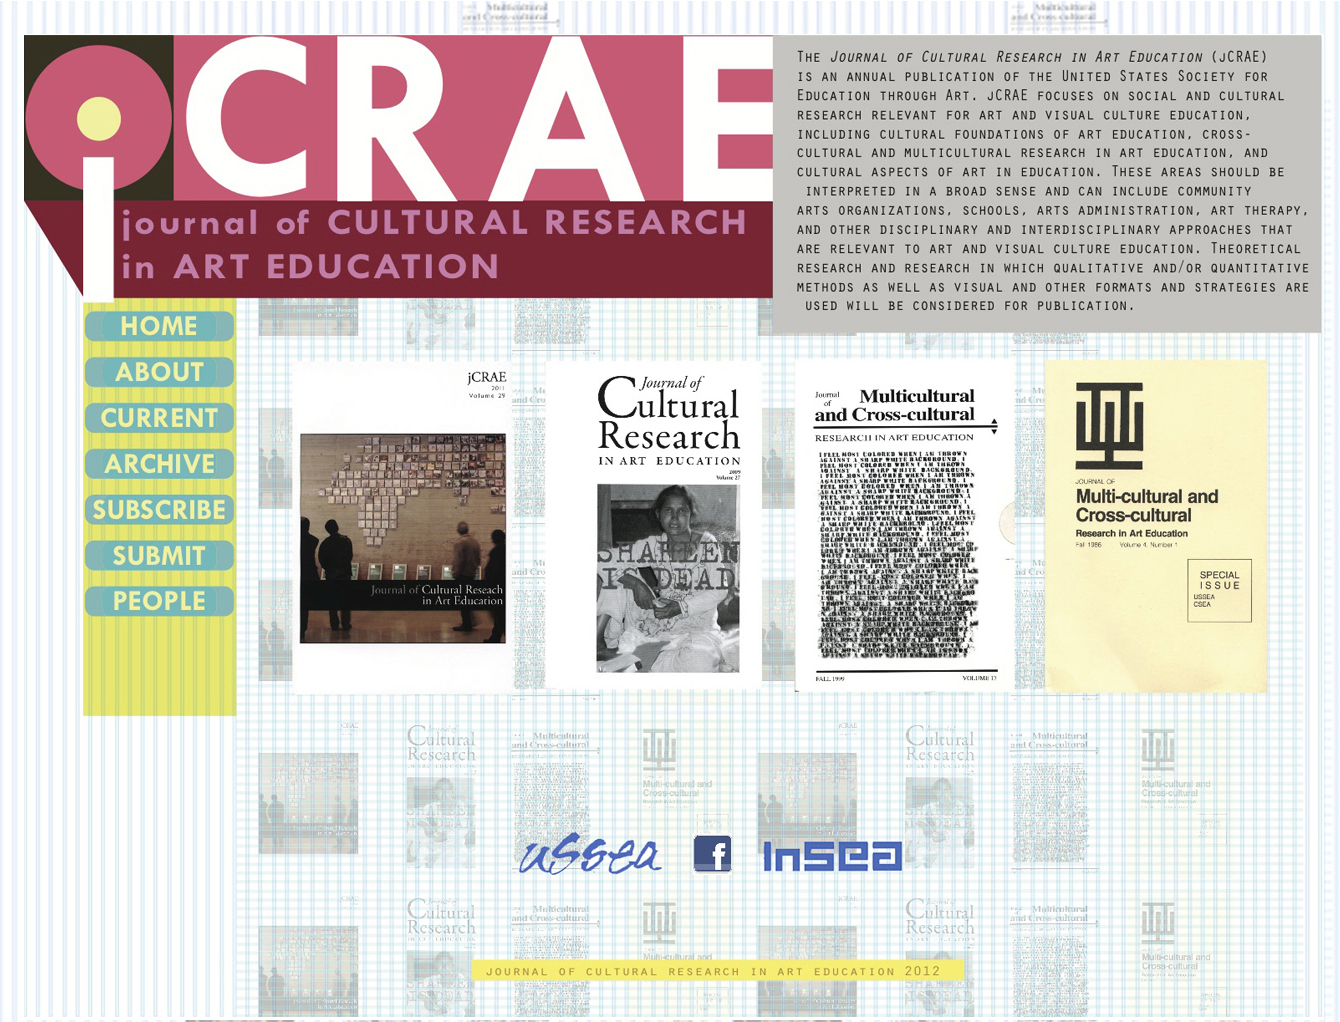 Serving on the review board on the Journal of Cultural Research in Art Education (JCRAE)